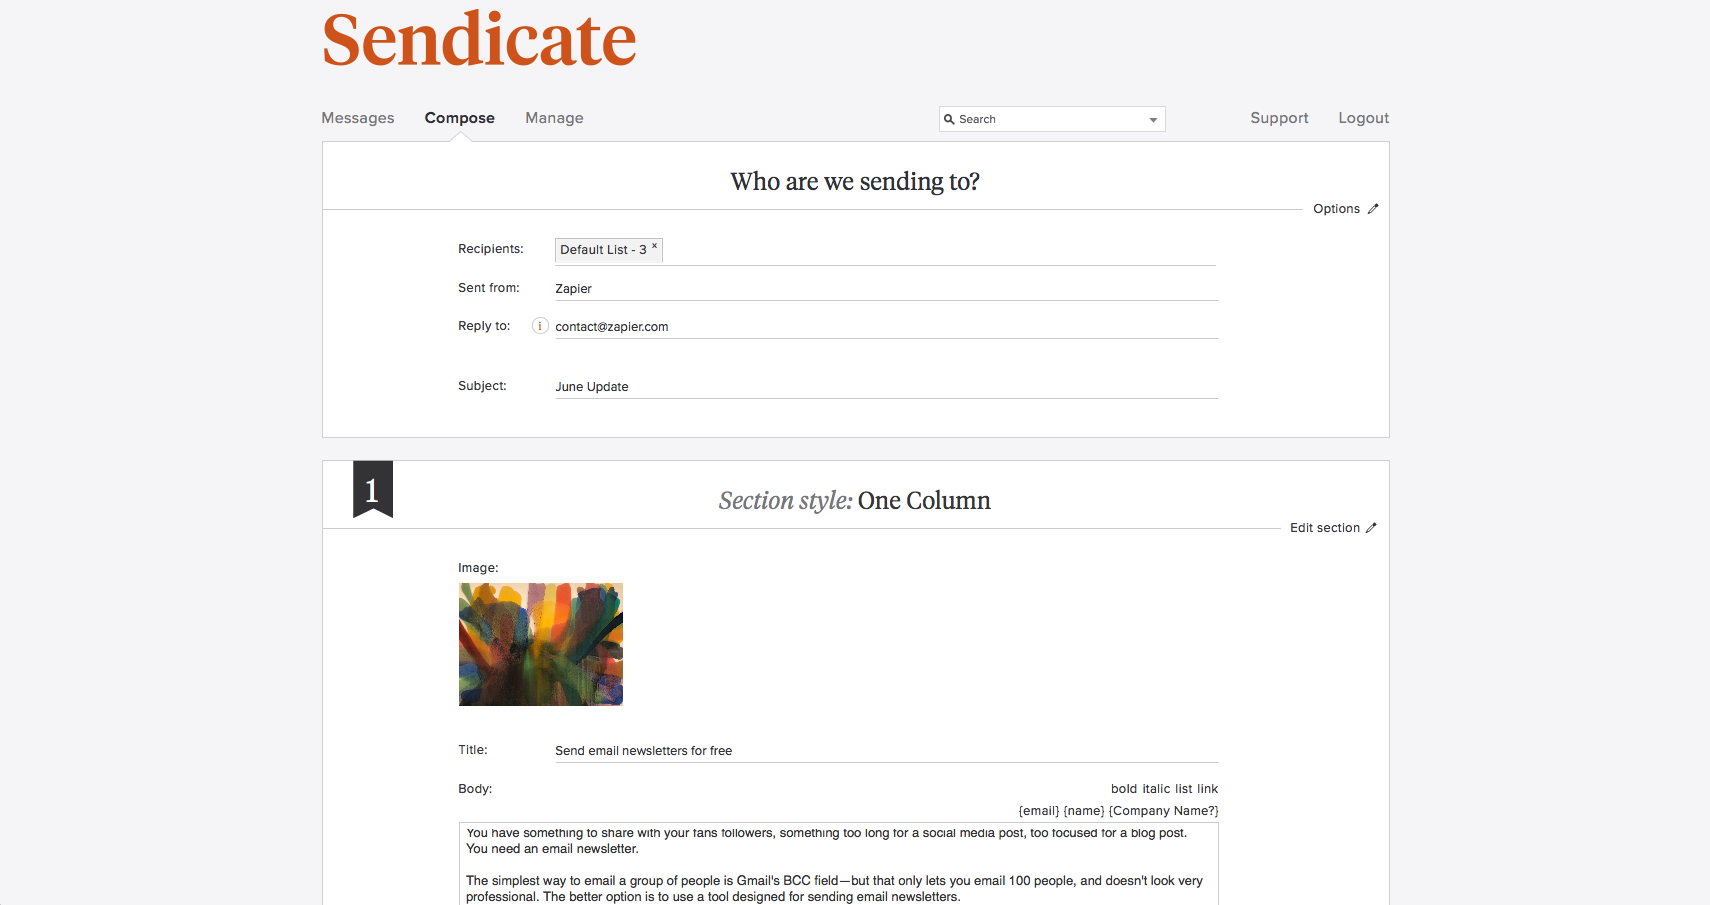 Sendicate screenshot